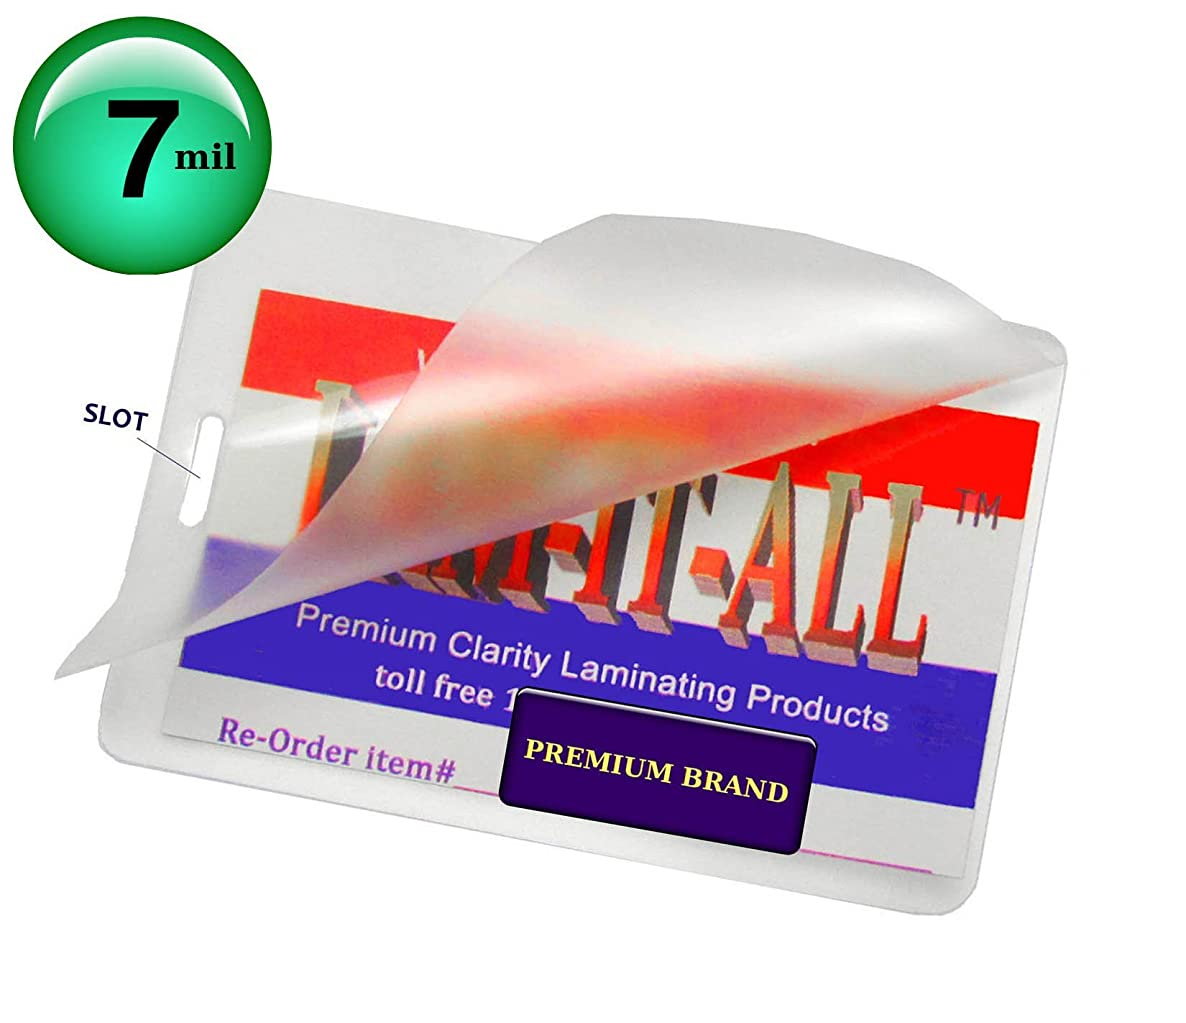 Hot 7 Mil Luggage Tag Laminating Pouches with Slot [Pack of 100] 2-1/2 X 4-1/4 Clear by LAM-IT-ALL